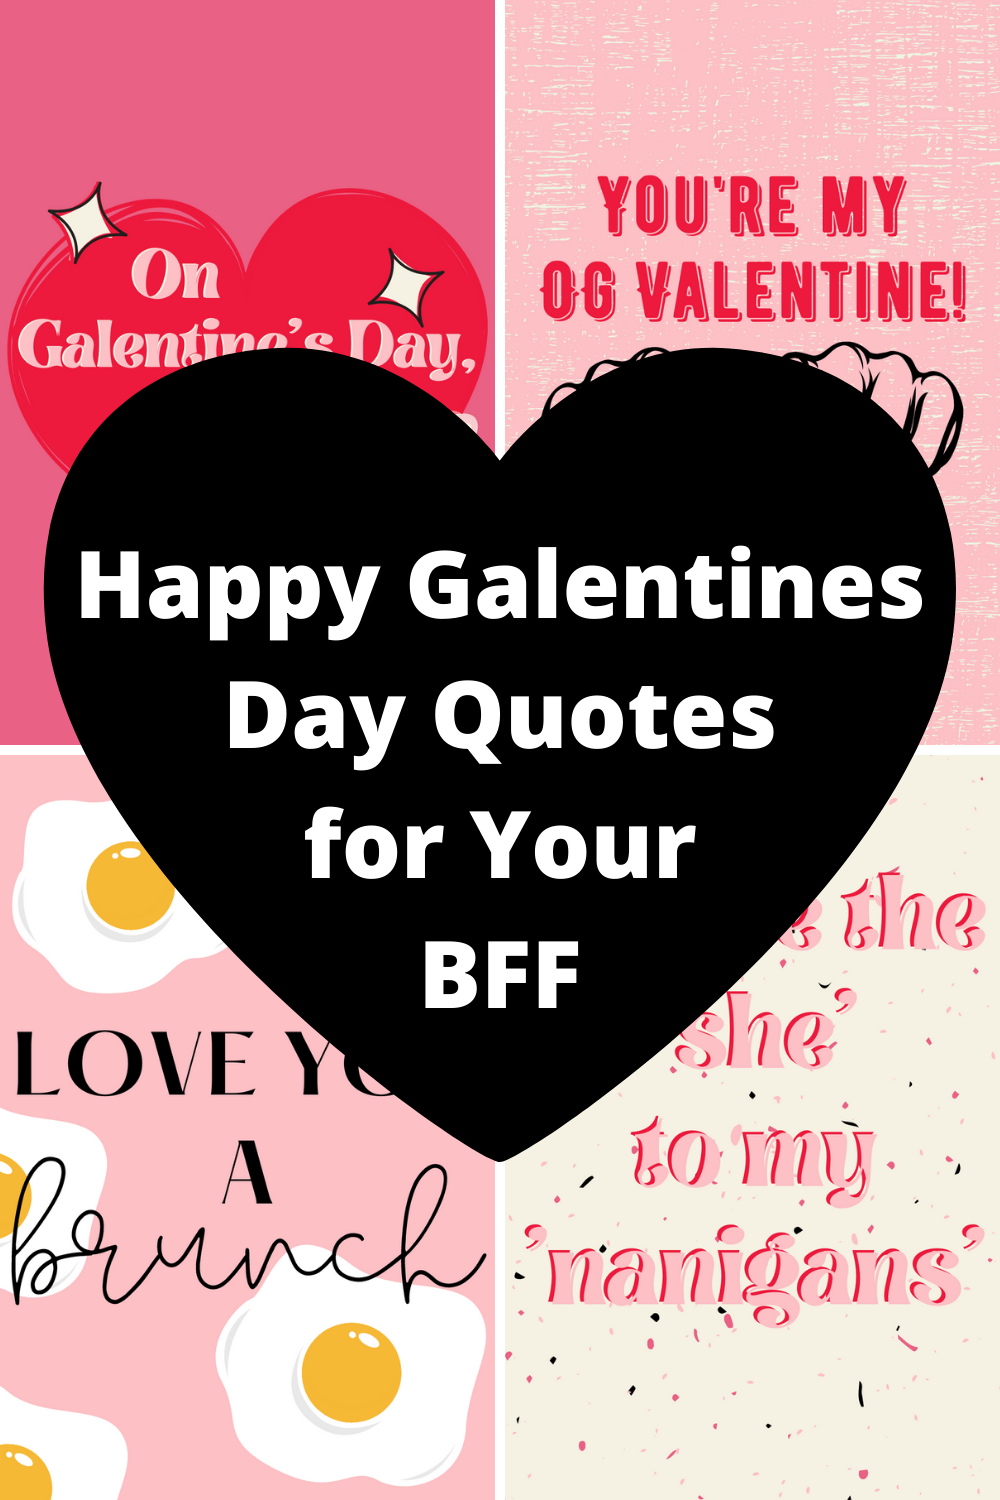 Happy Galentines Day Quotes